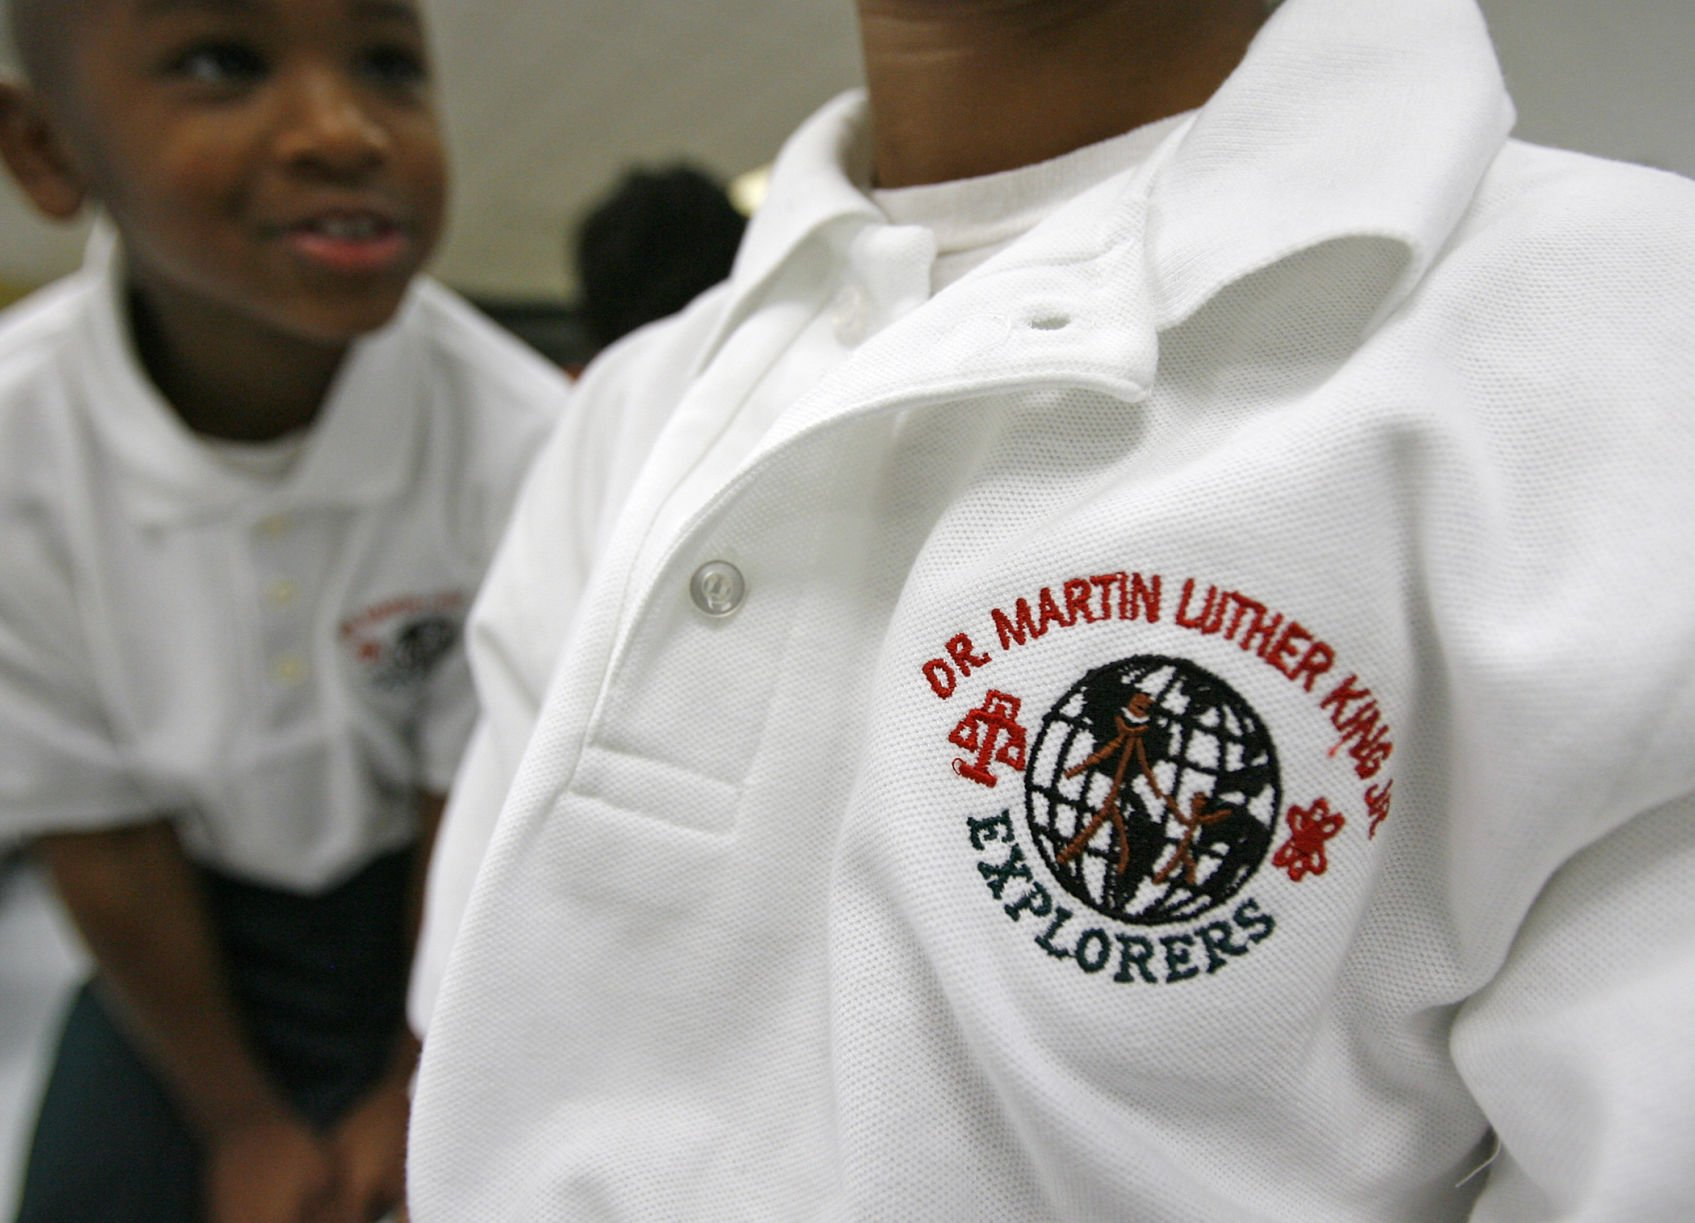 2 New Orleans charter schools plan to move to 4-day school week in August